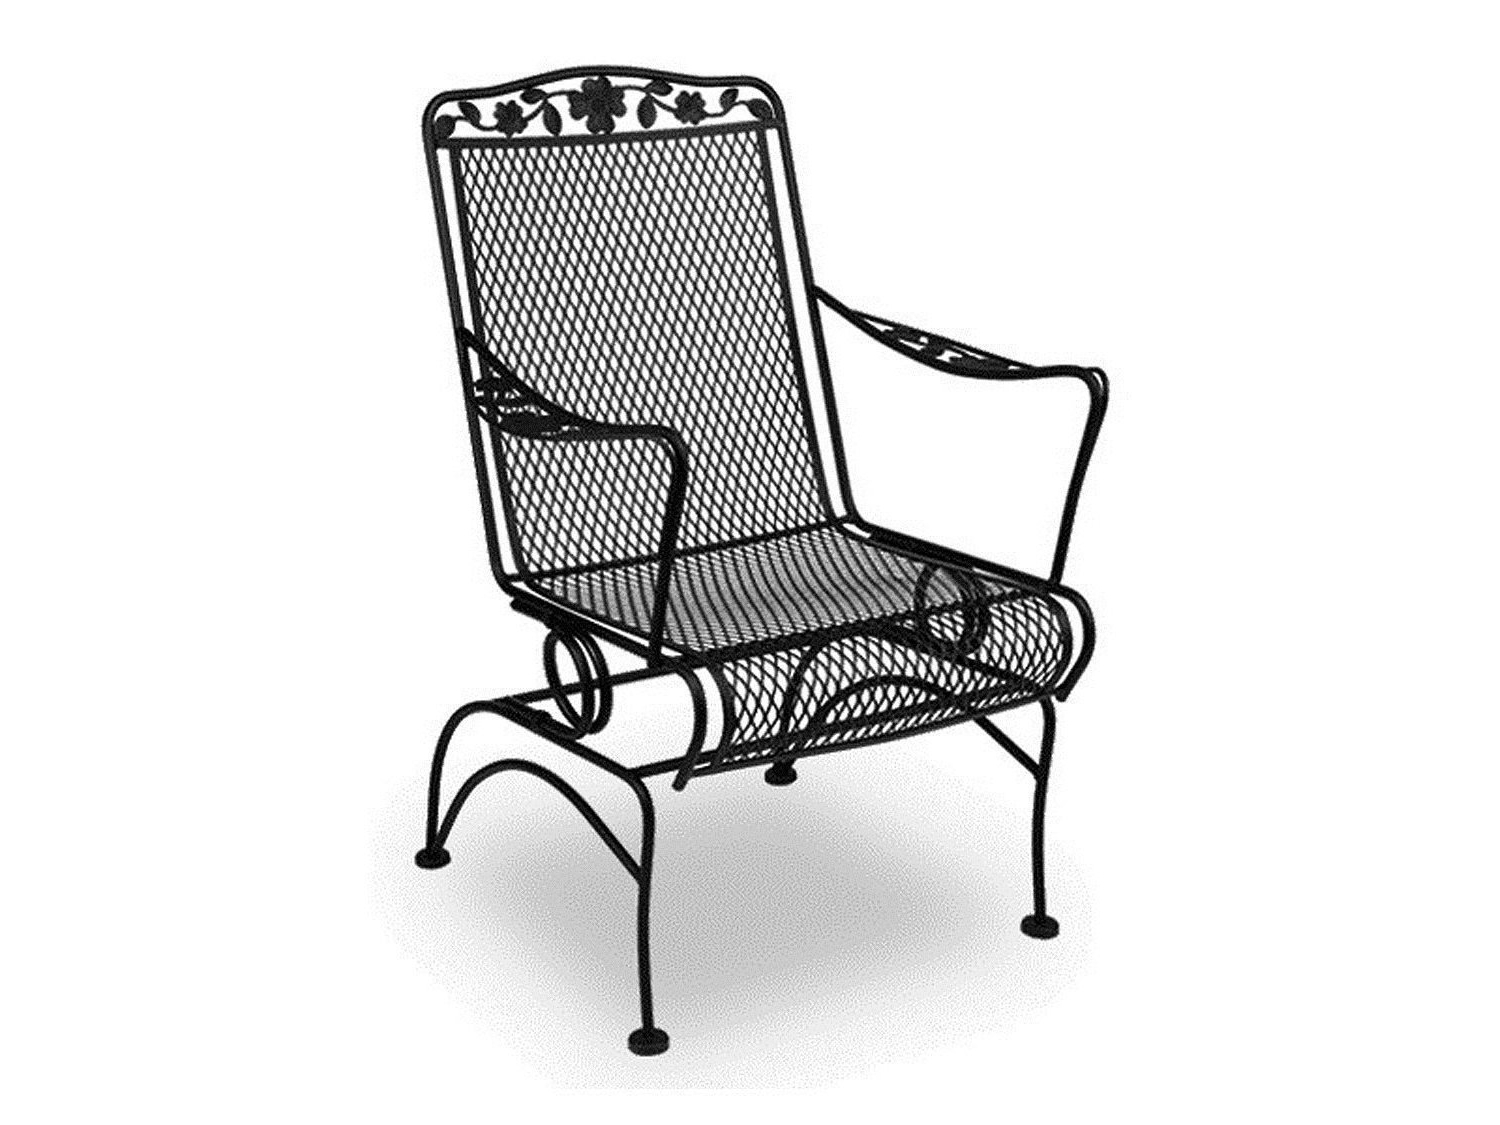 Most Recently Released Wrought Iron Rocking Chair Patio Furniture Design Ideas – Arelisapril Pertaining To Wrought Iron Patio Rocking Chairs (View 2 of 20)